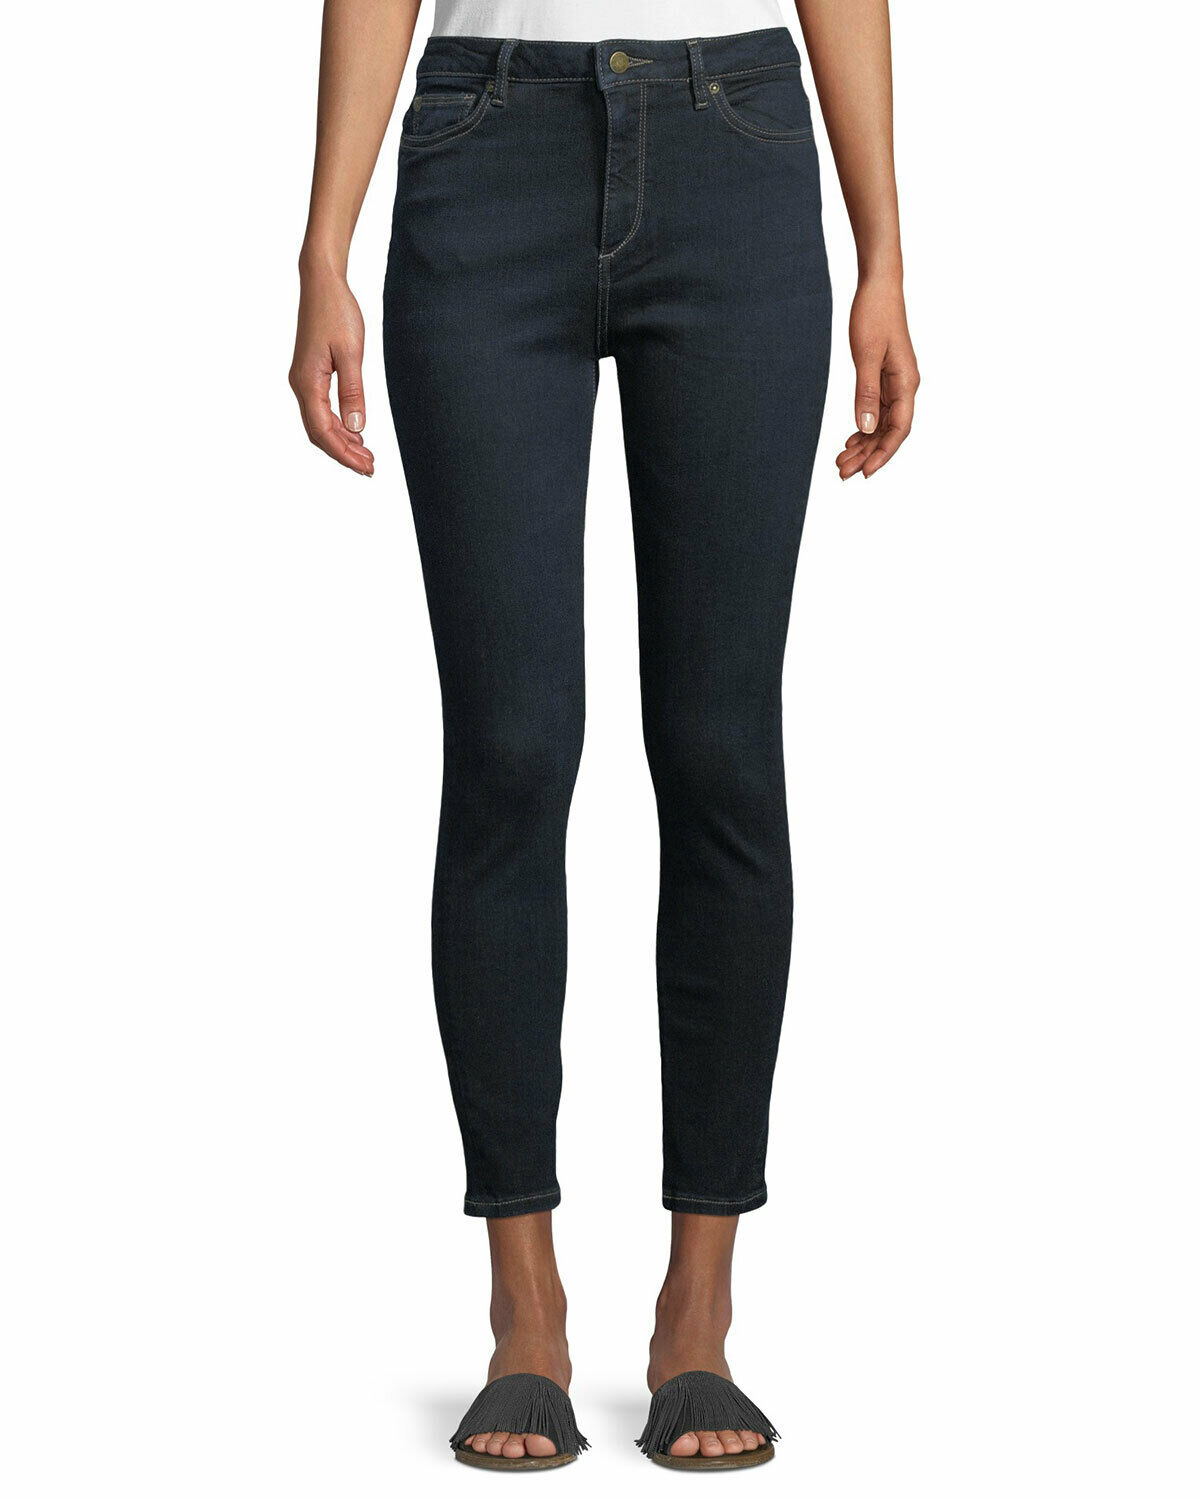 NWT DL1961 Size 25 Chrissy Trimtone Skinny High Rise Jeans in Alexandra